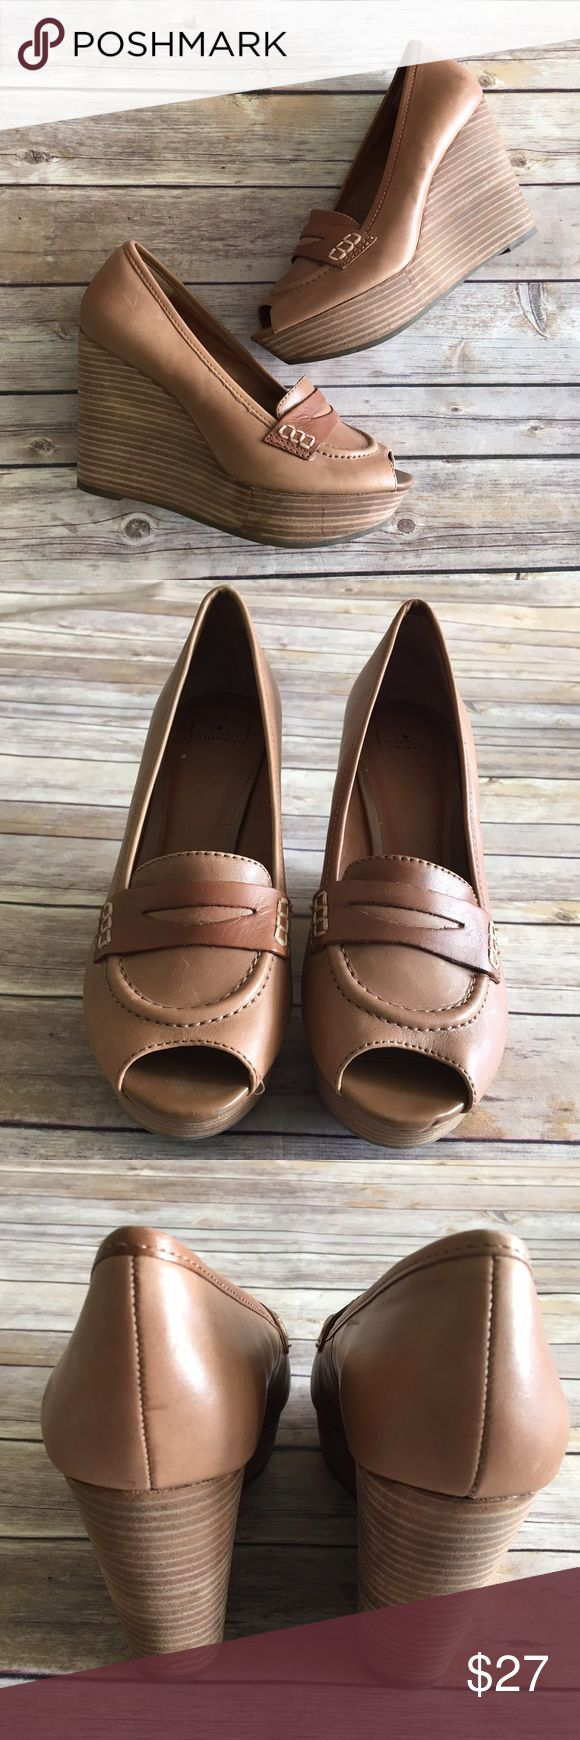 Lucky Brand leather wedge loafers Lucky Brand Laila brown leather wedge loafers. Good condition. The heel is about 4.5 inches tall and the platform is about 1.5 inches. Lucky Brand Shoes Wedges